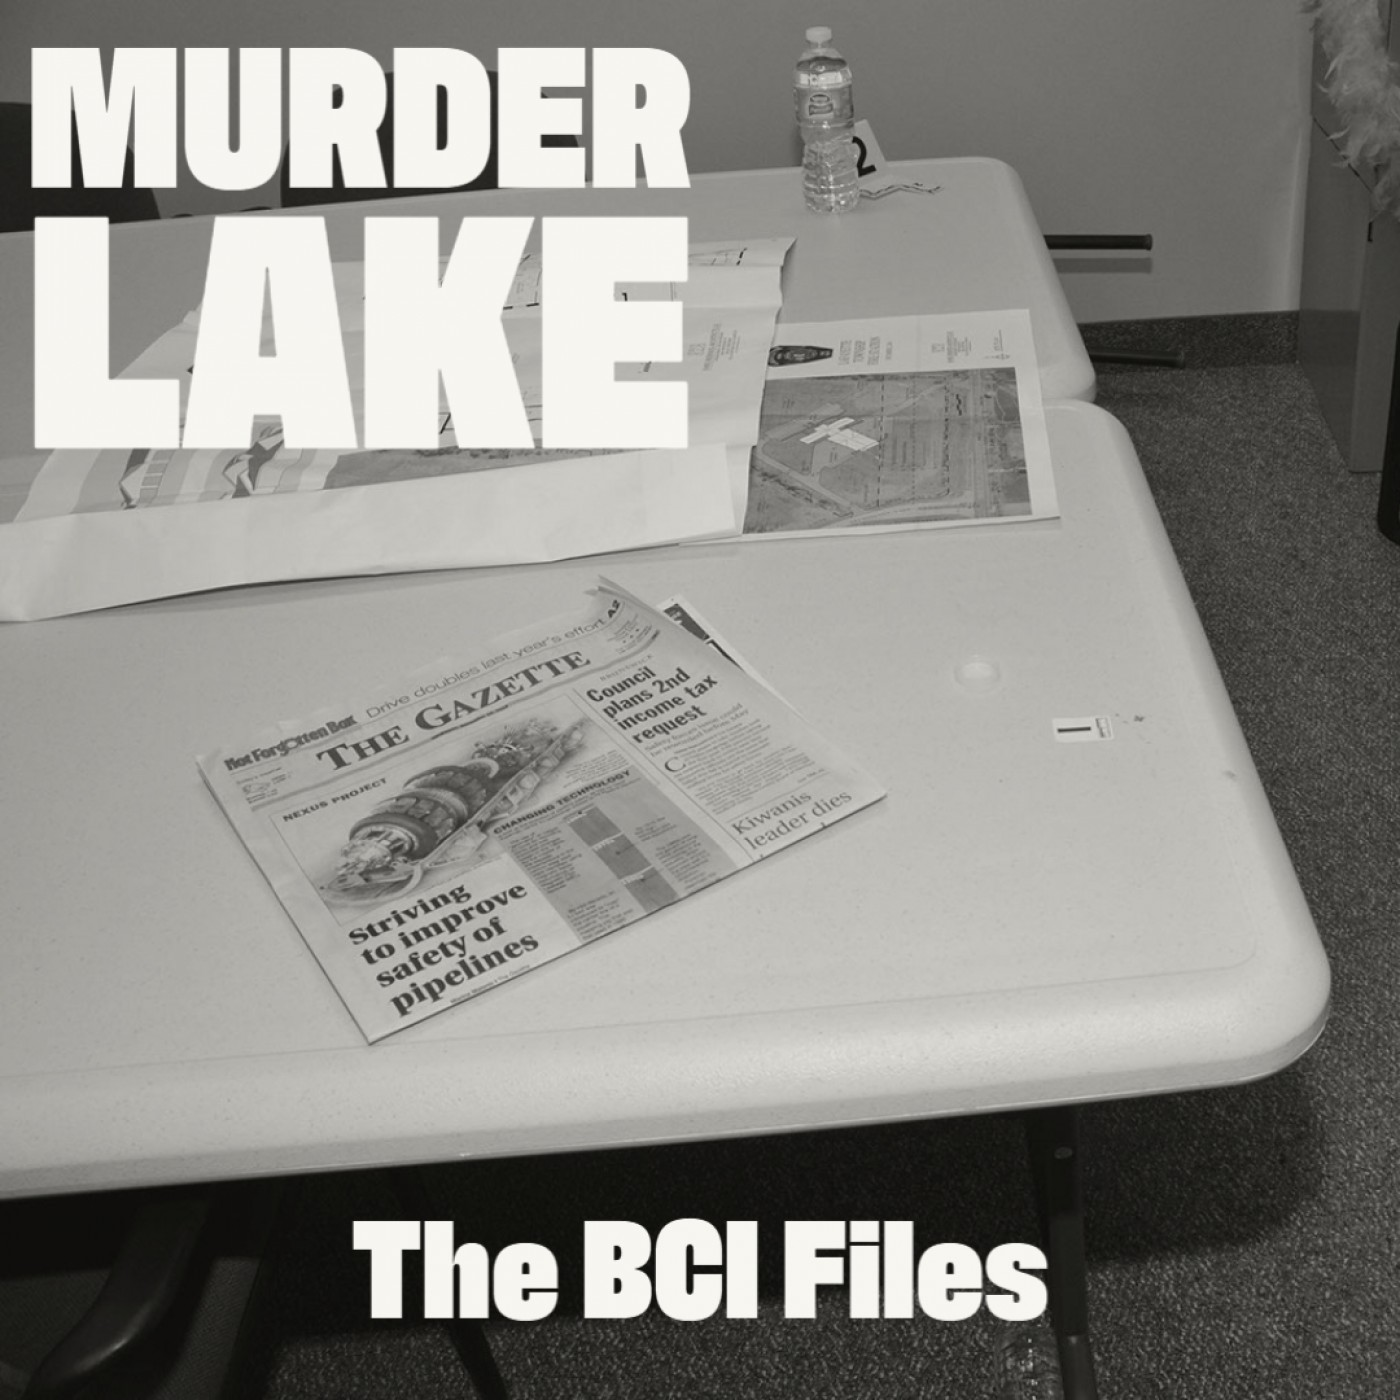 The Murder Lake BCI Files